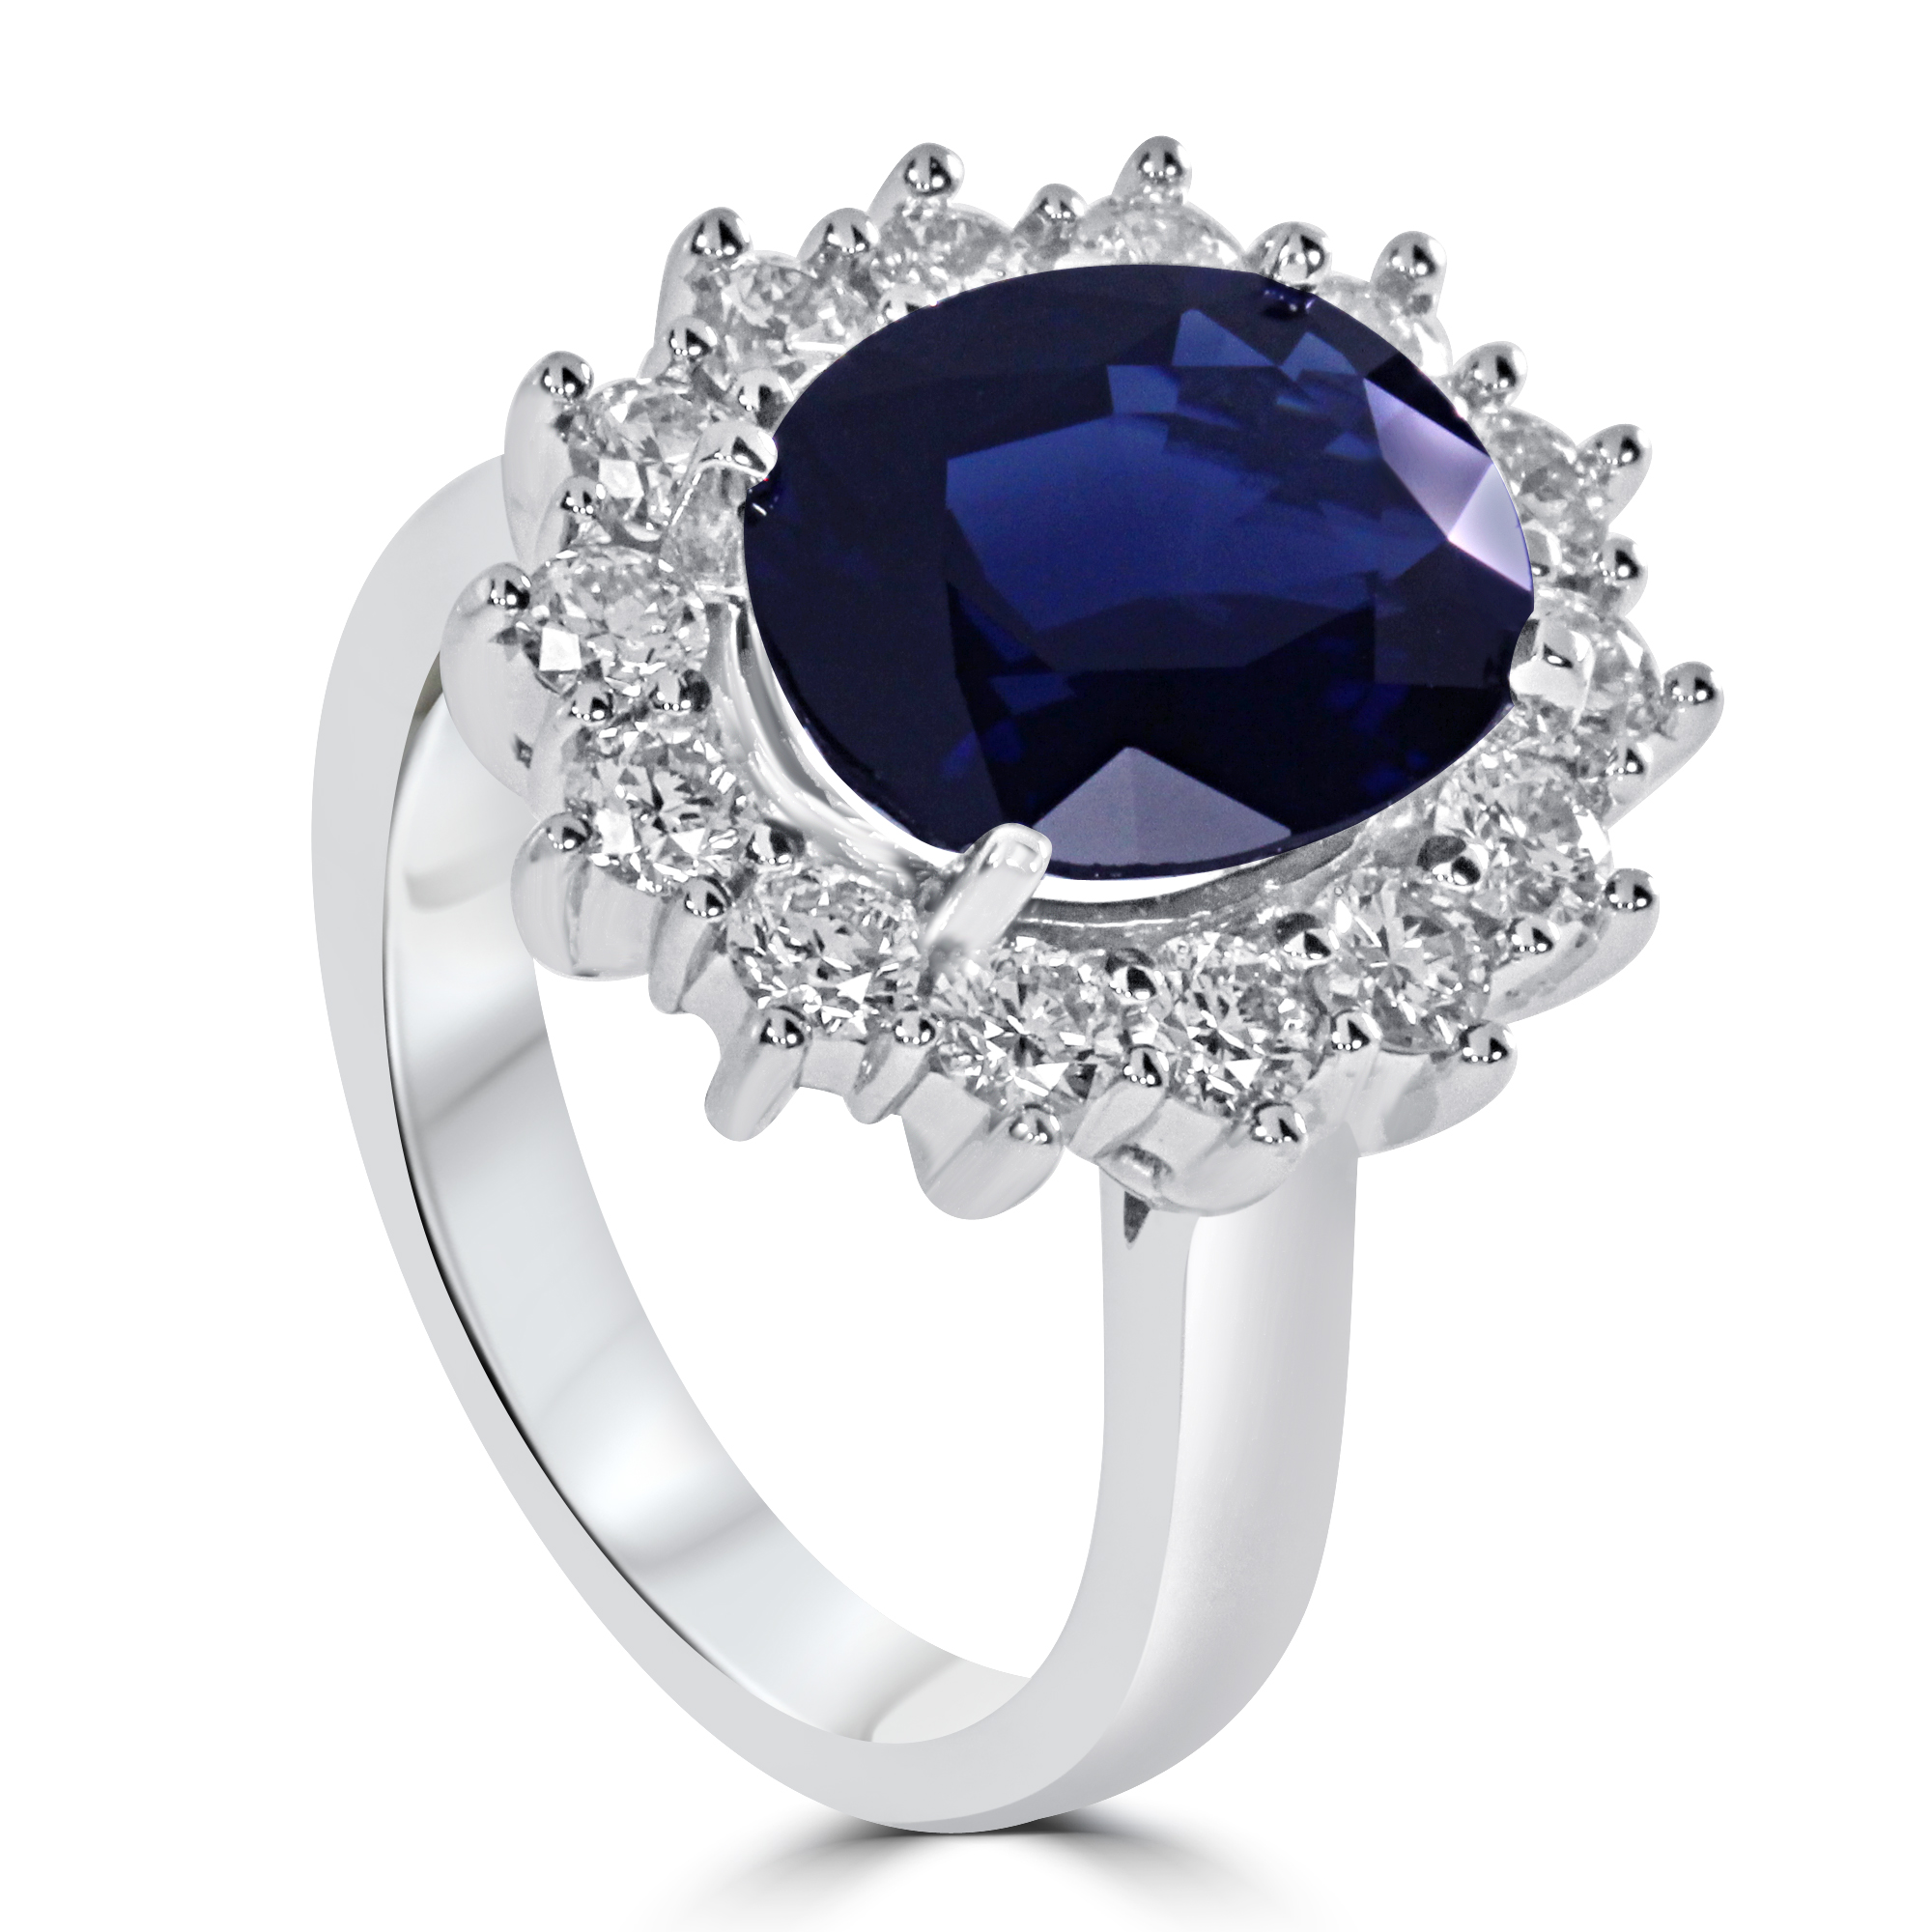 14k white gold oval sapphire diamond halo engagement ring. Black Bedroom Furniture Sets. Home Design Ideas